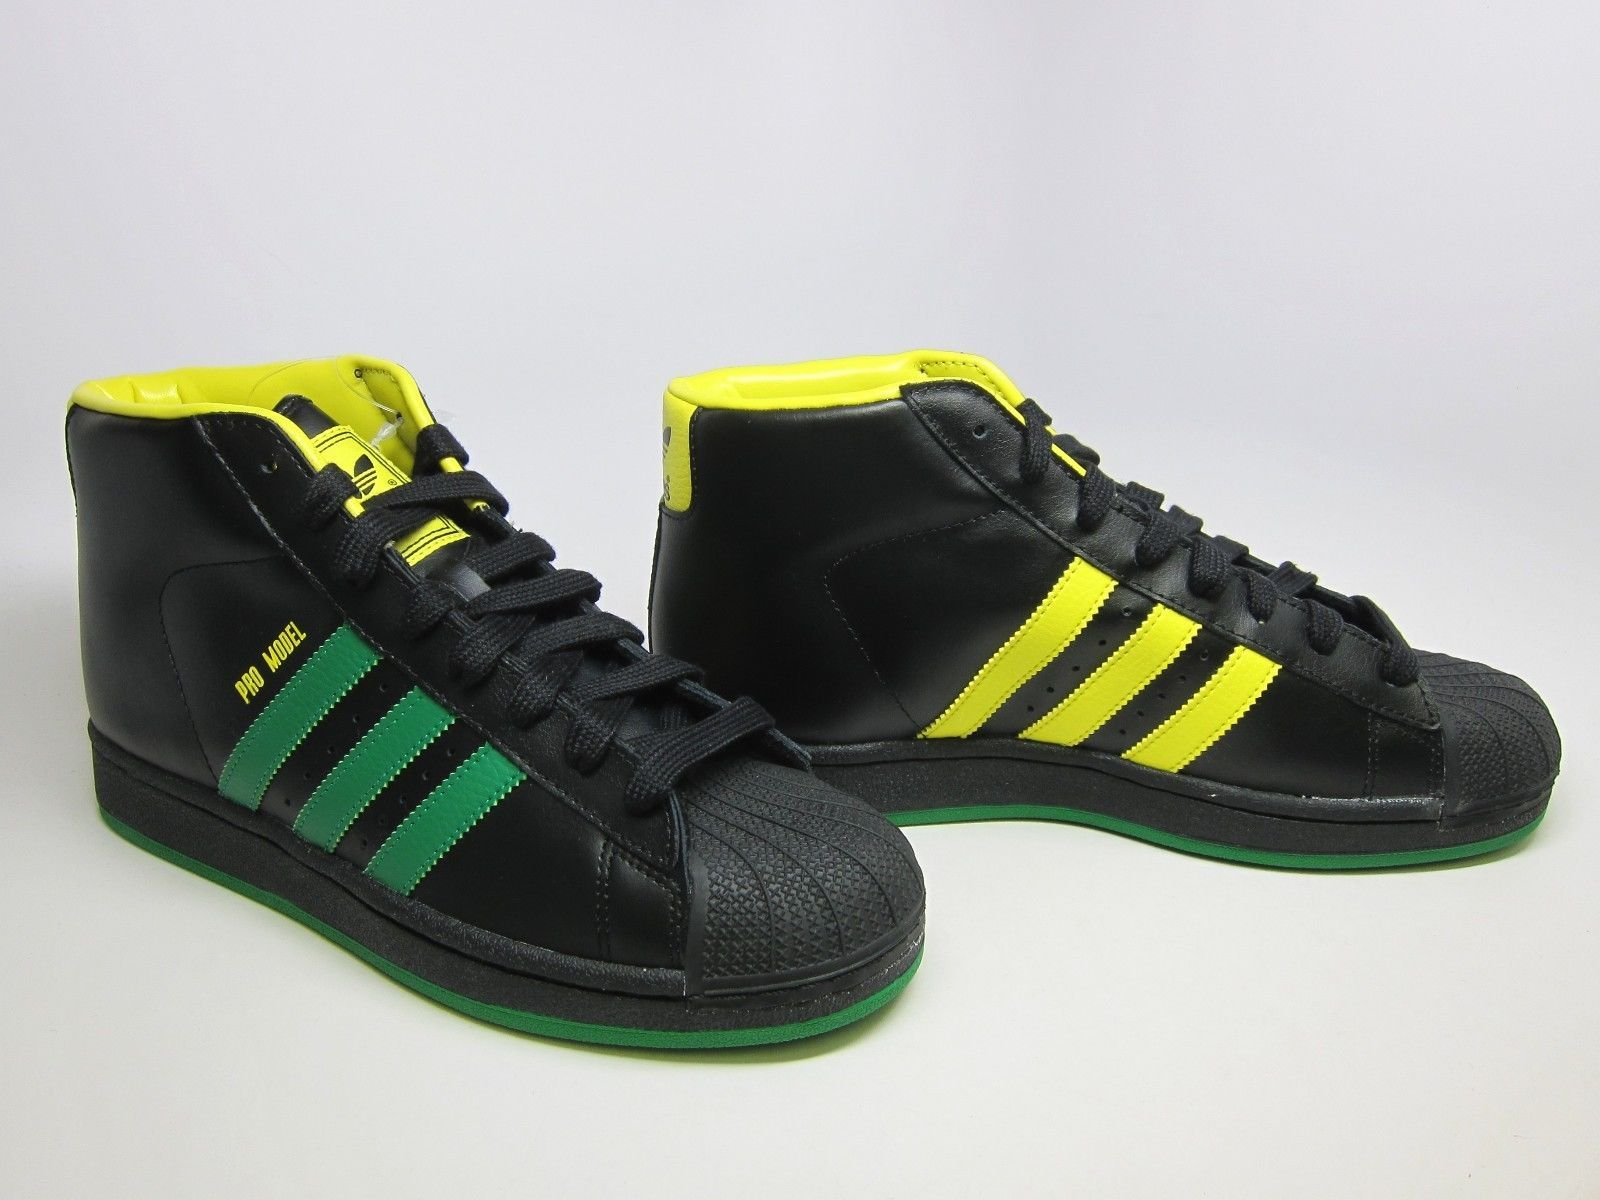 ADIDAS ORIGINALS PRO MODEL BLACK GREEN YELLOW S84285